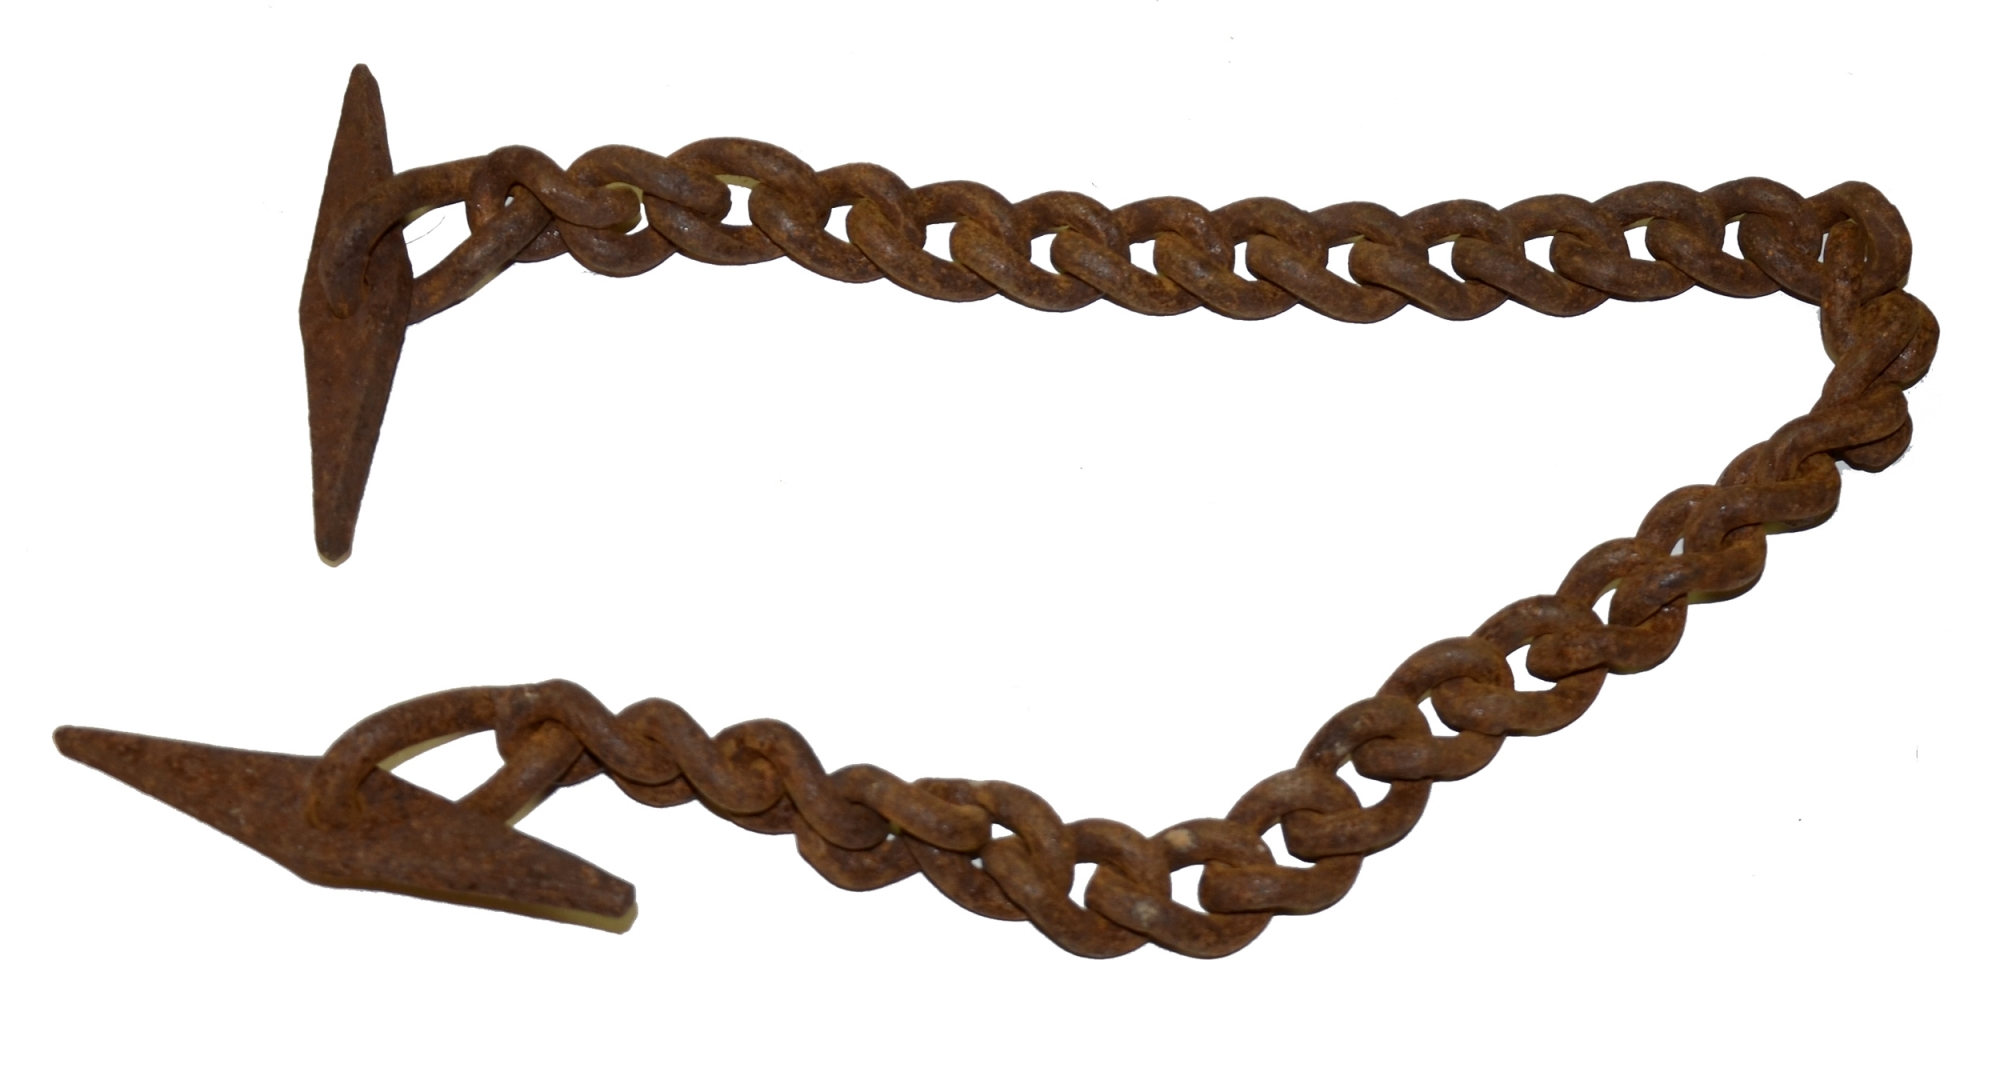 US/CS ARTILLERY CHAIN FROM GETTYSBURG